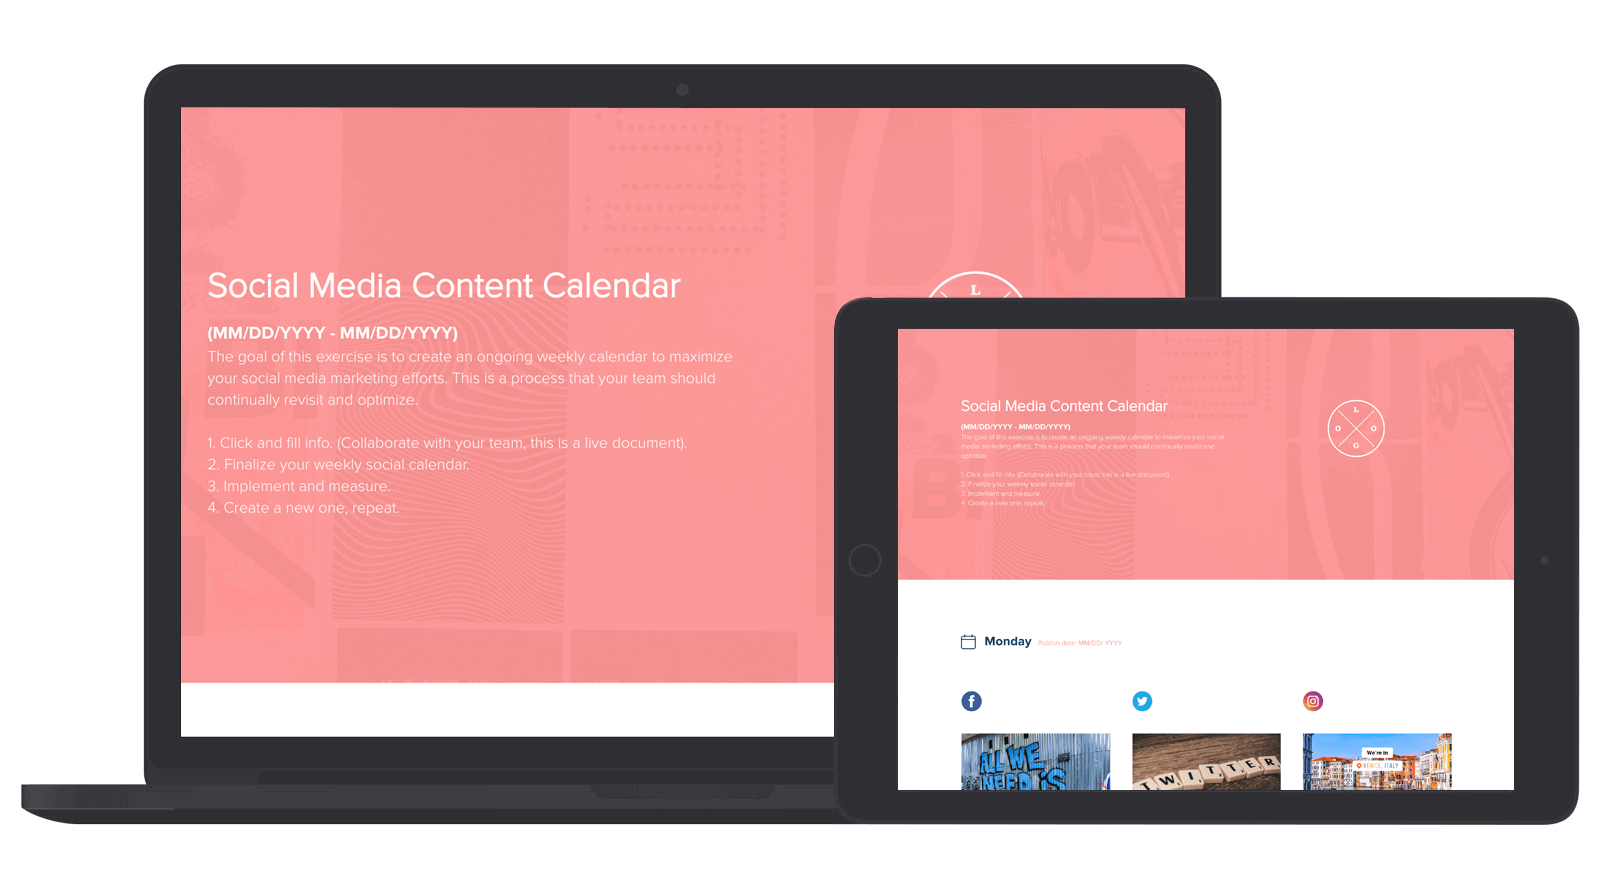 New Resource: How-to Create a Social Media Content Calendar